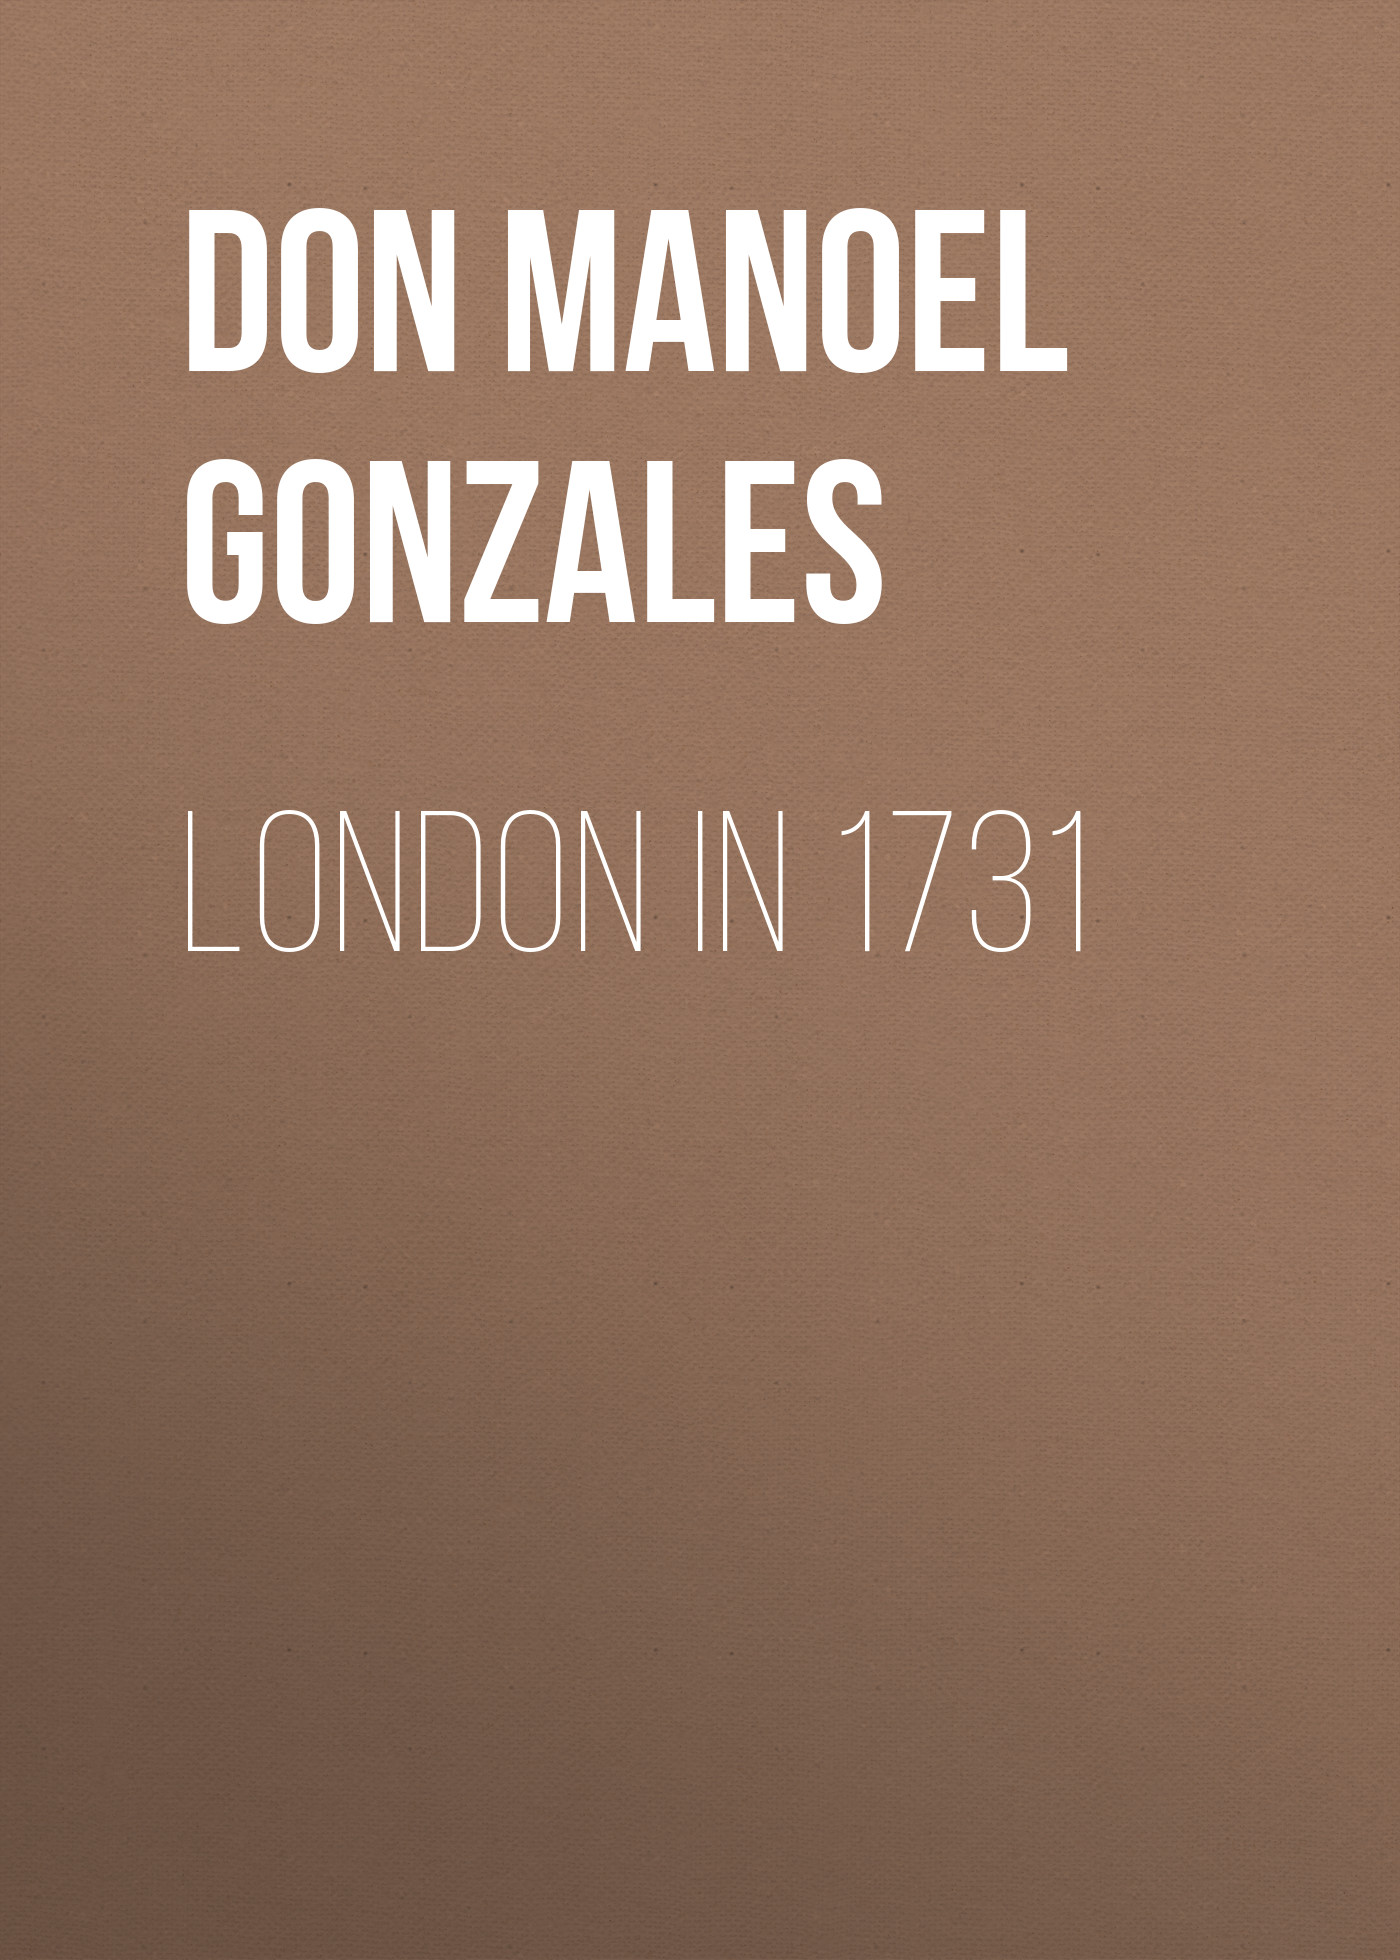 Don Manoel Gonzales London in 1731 alejandro gonzales the collection